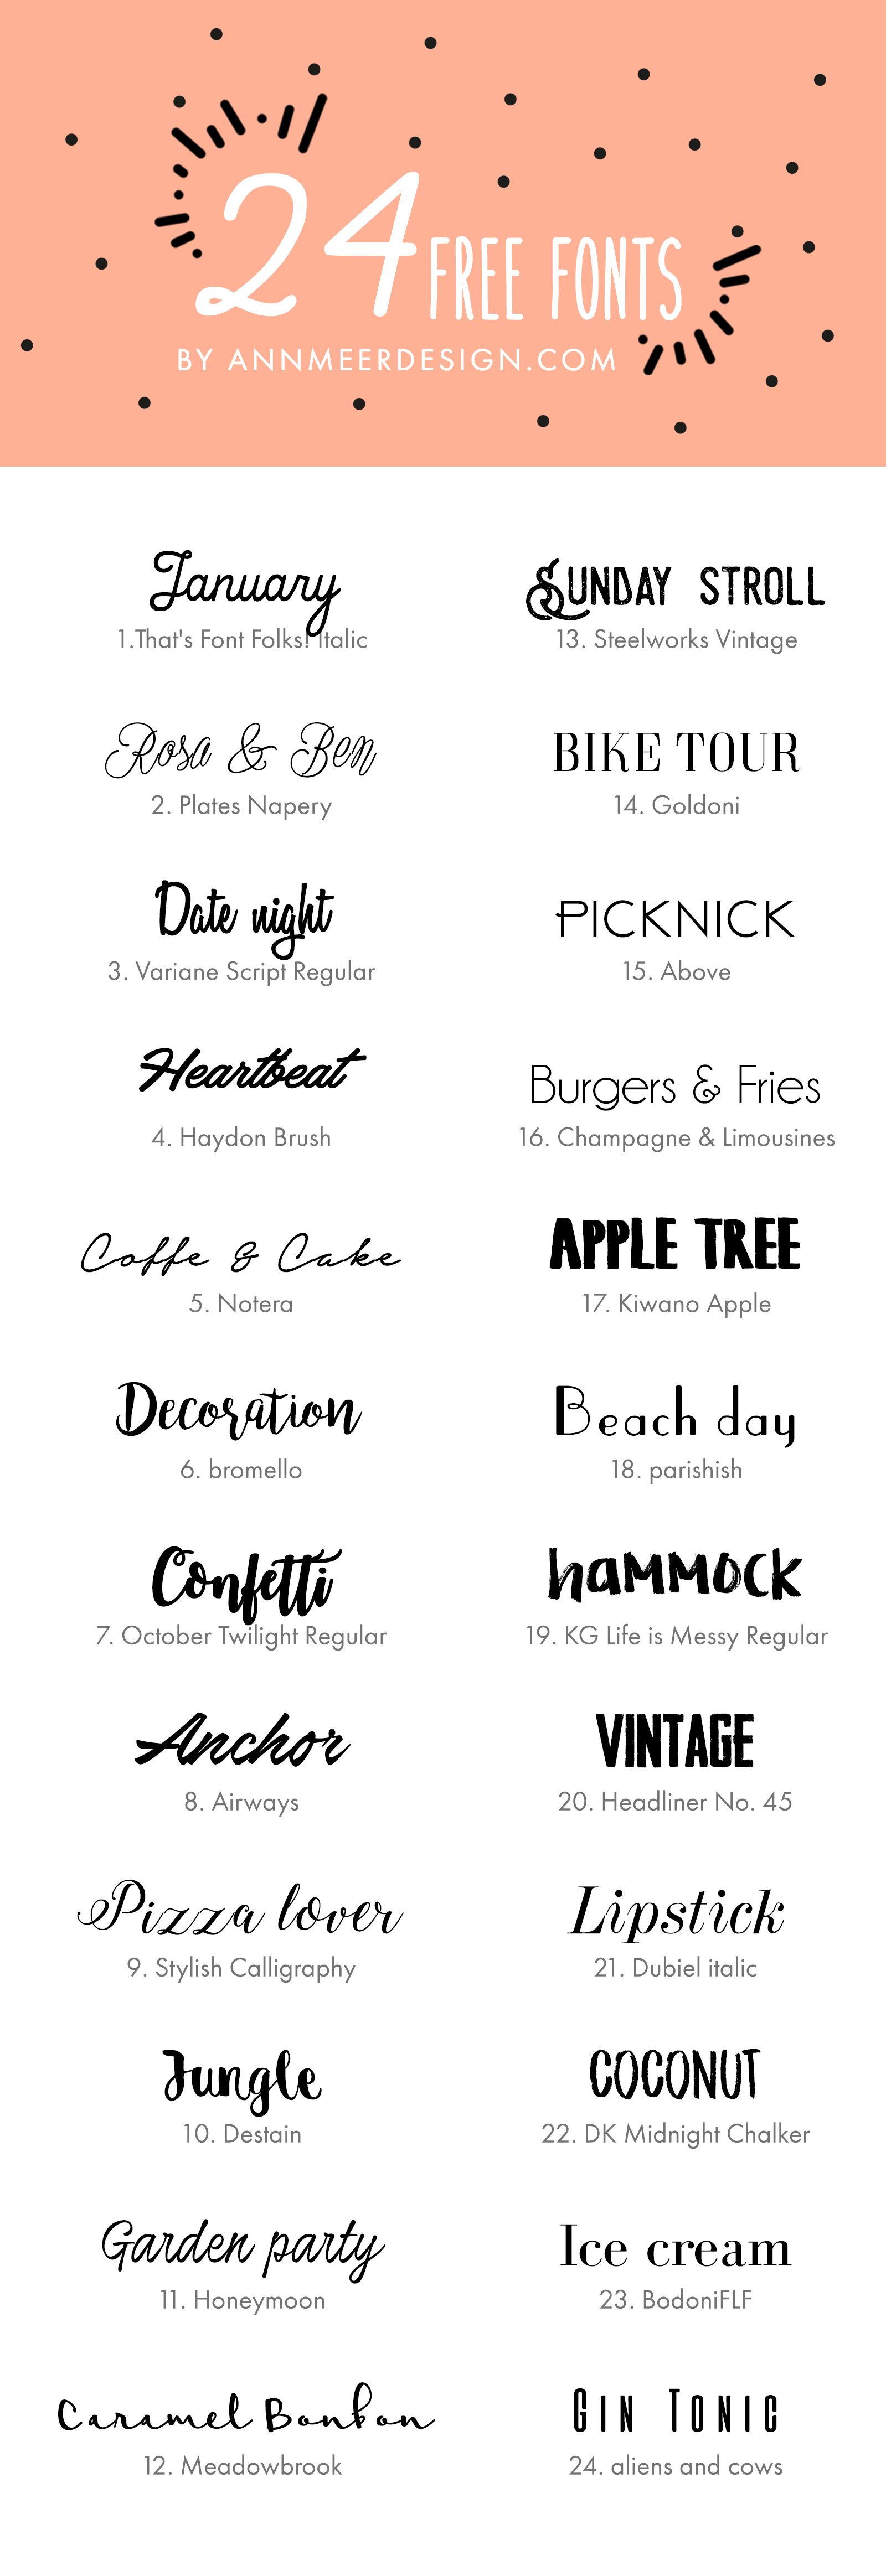 24 FREE FONTS by annmeerdesign.com | DESIGN | Pinterest | Fonts ...